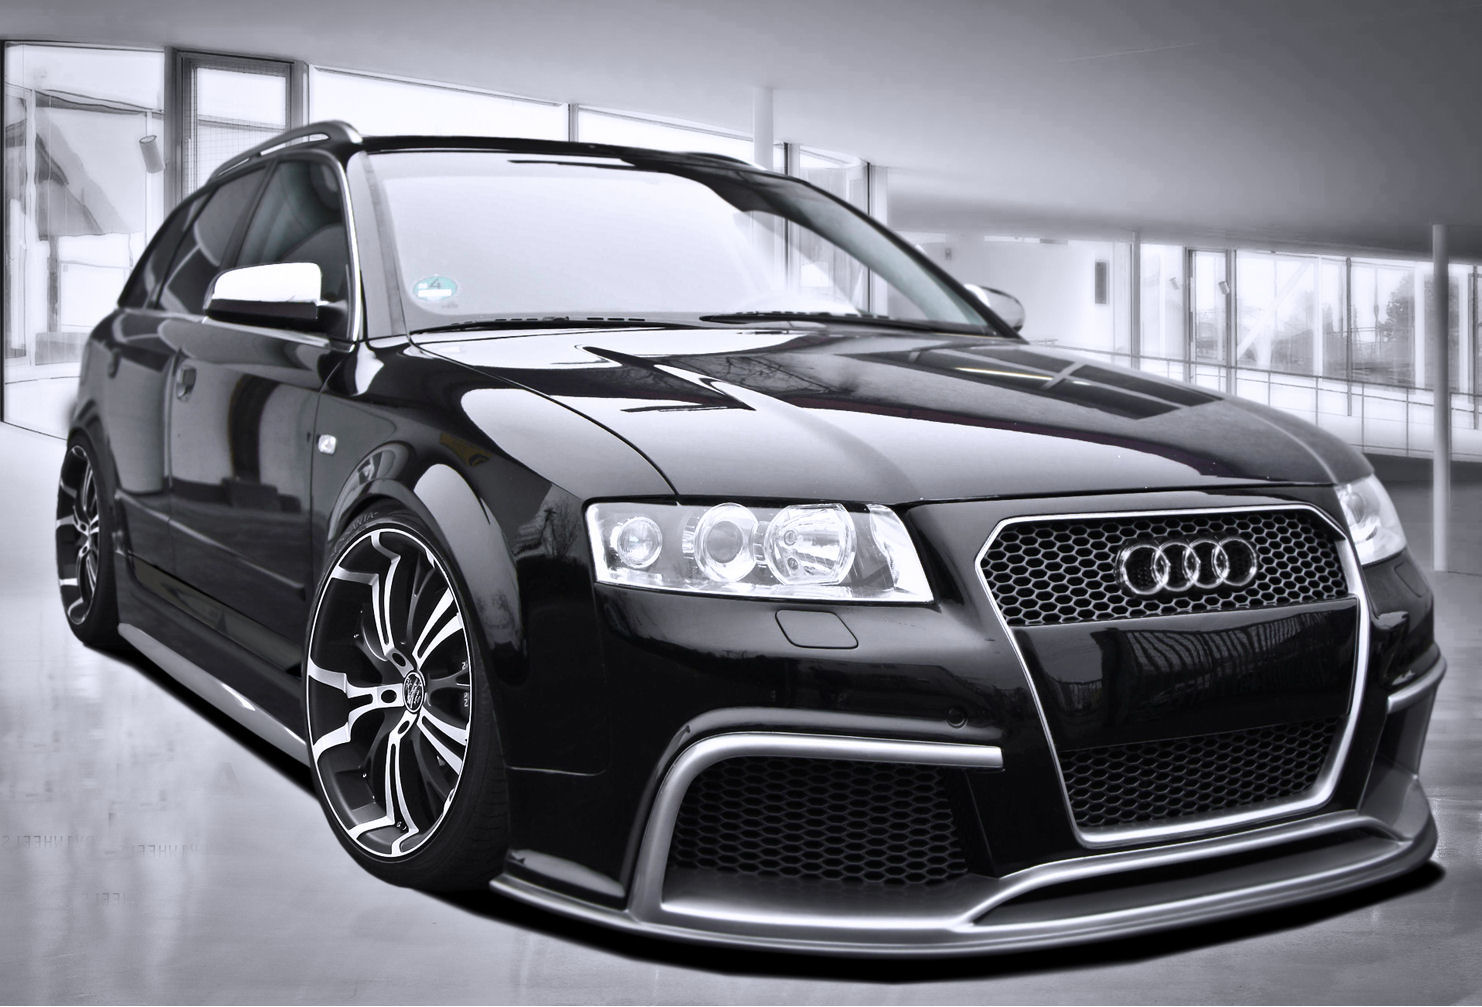 B6 8e Rs Style Complete Body Kit For Audi A4 Avant Wagon 02 05 144999